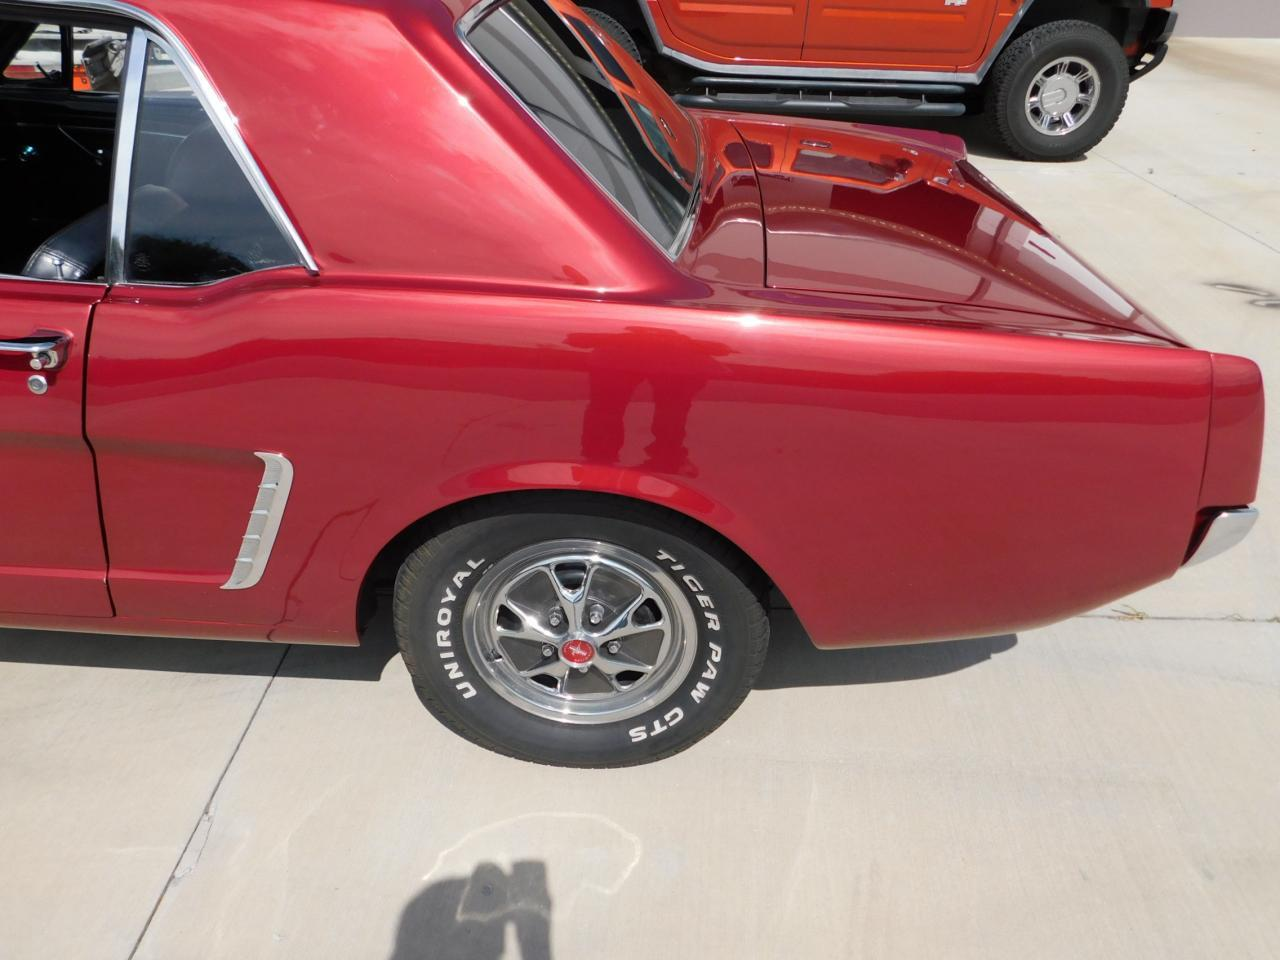 Large Picture of '65 Ford Mustang located in Georgia Offered by Gateway Classic Cars - Atlanta - LDV0